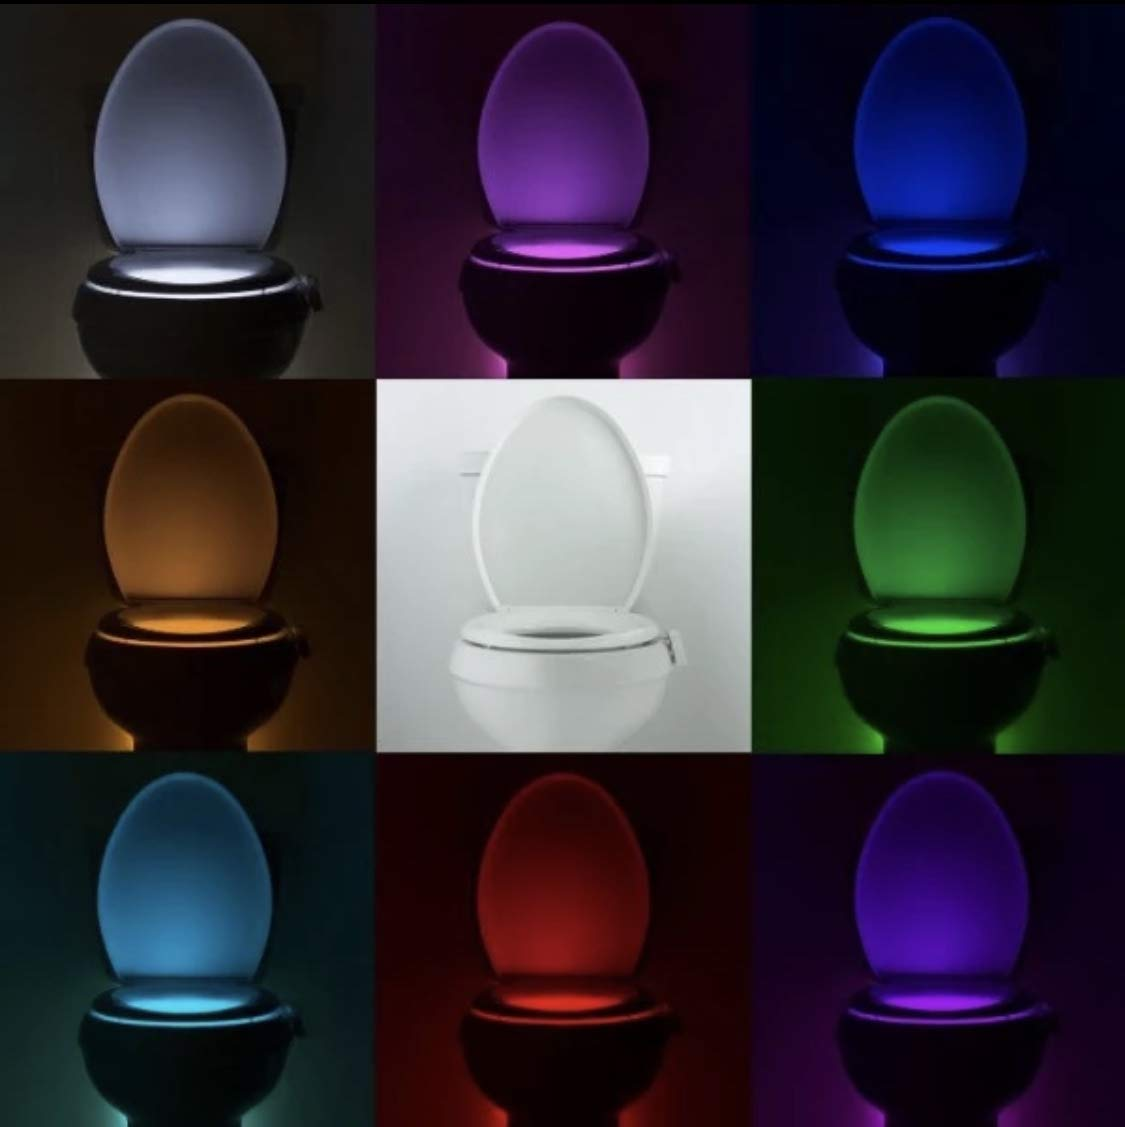 Toilet Night Light Motion Activated LED Light 8 Colors Changing Toilet Bowl Nightlight for Bathroom Battery Not Included